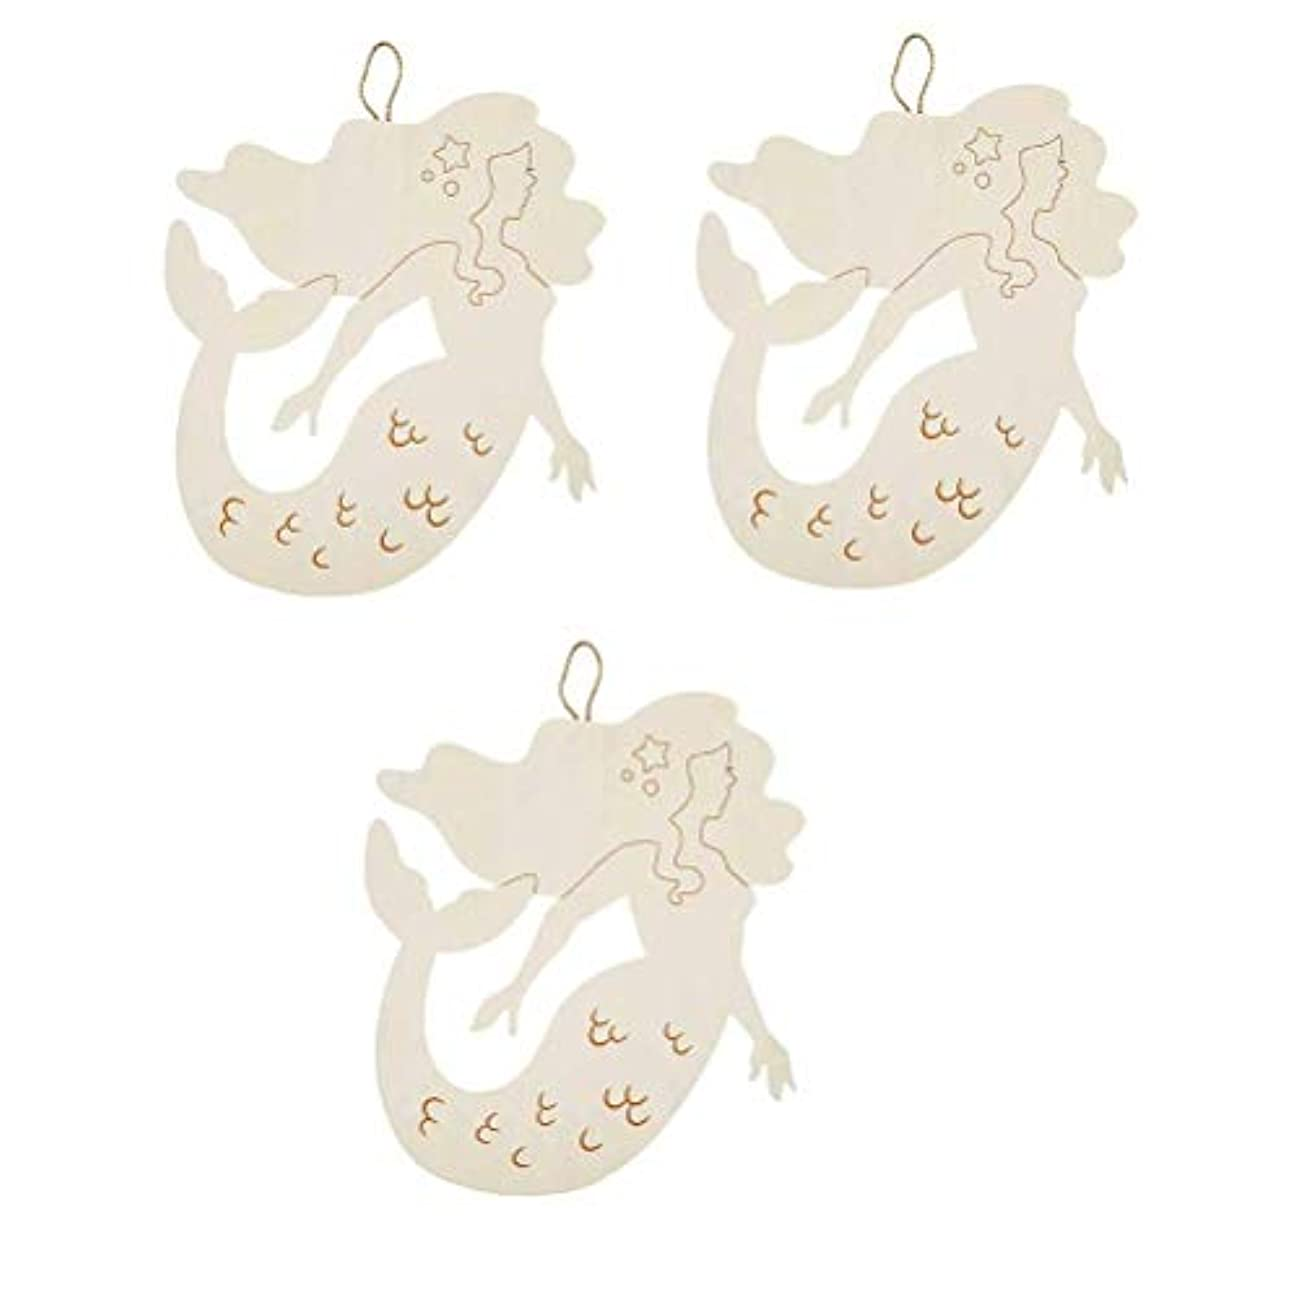 J&J's ToyScape Mermaid Hanging Wooden Shape (Pack of 3, Size: 12.6